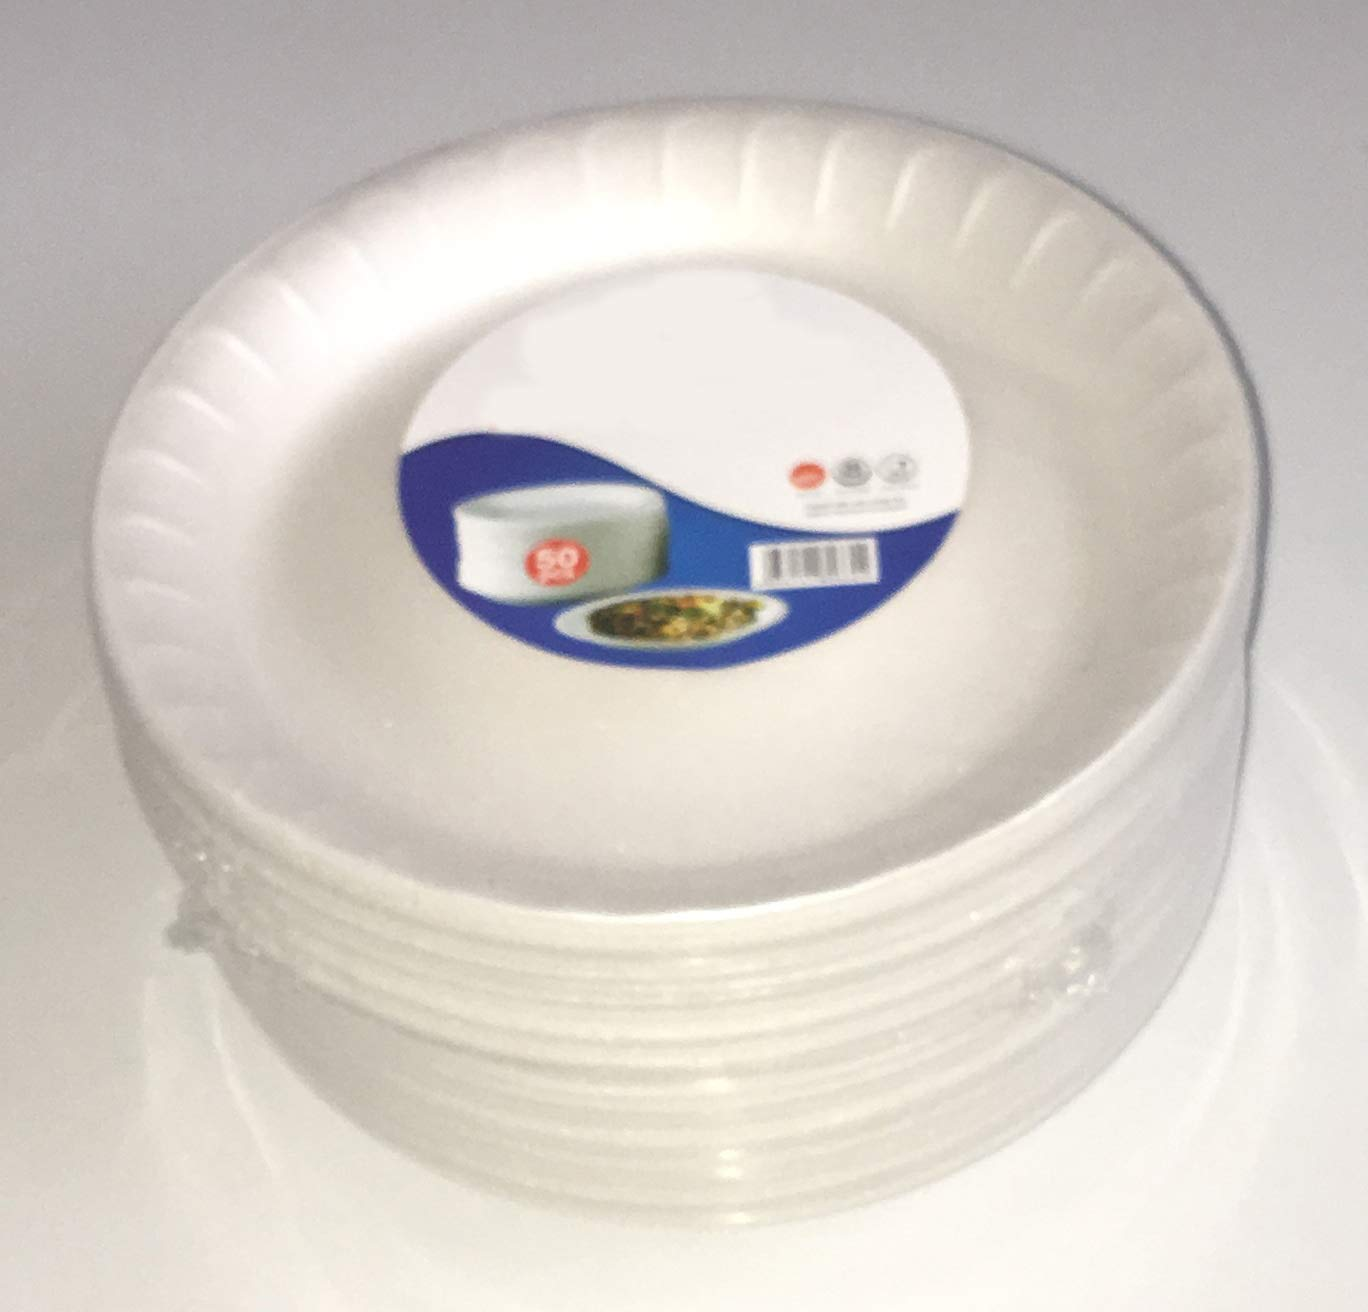 1000 Tezraftaar® White Foam Disposable Plates 9  Small Polystyrene for Food at Parties, BBQ's and Celebrations (1000)